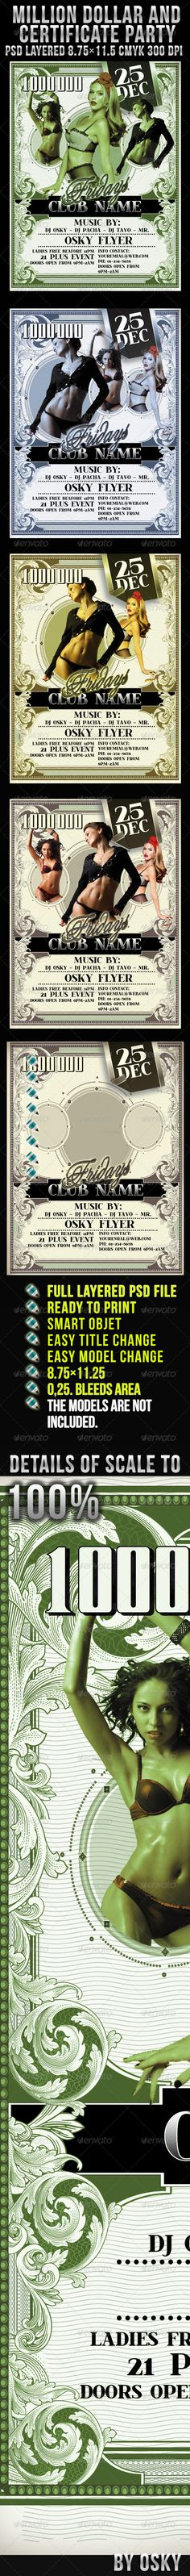 Buy Million Dollar And Certificate Party by osky on GraphicRiver. Million Dollar And Certificate Party inches psd files 300 dpi CMYK bleed area, Easy model Photo Repla. Retro Wedding Dresses, Vintage Wedding Invitations, Wedding Vintage, Vintage Tattoo Sleeve, Vintage Style Tattoos, Easy Model, Old Sewing Machines, Theme Color, Anime Artwork